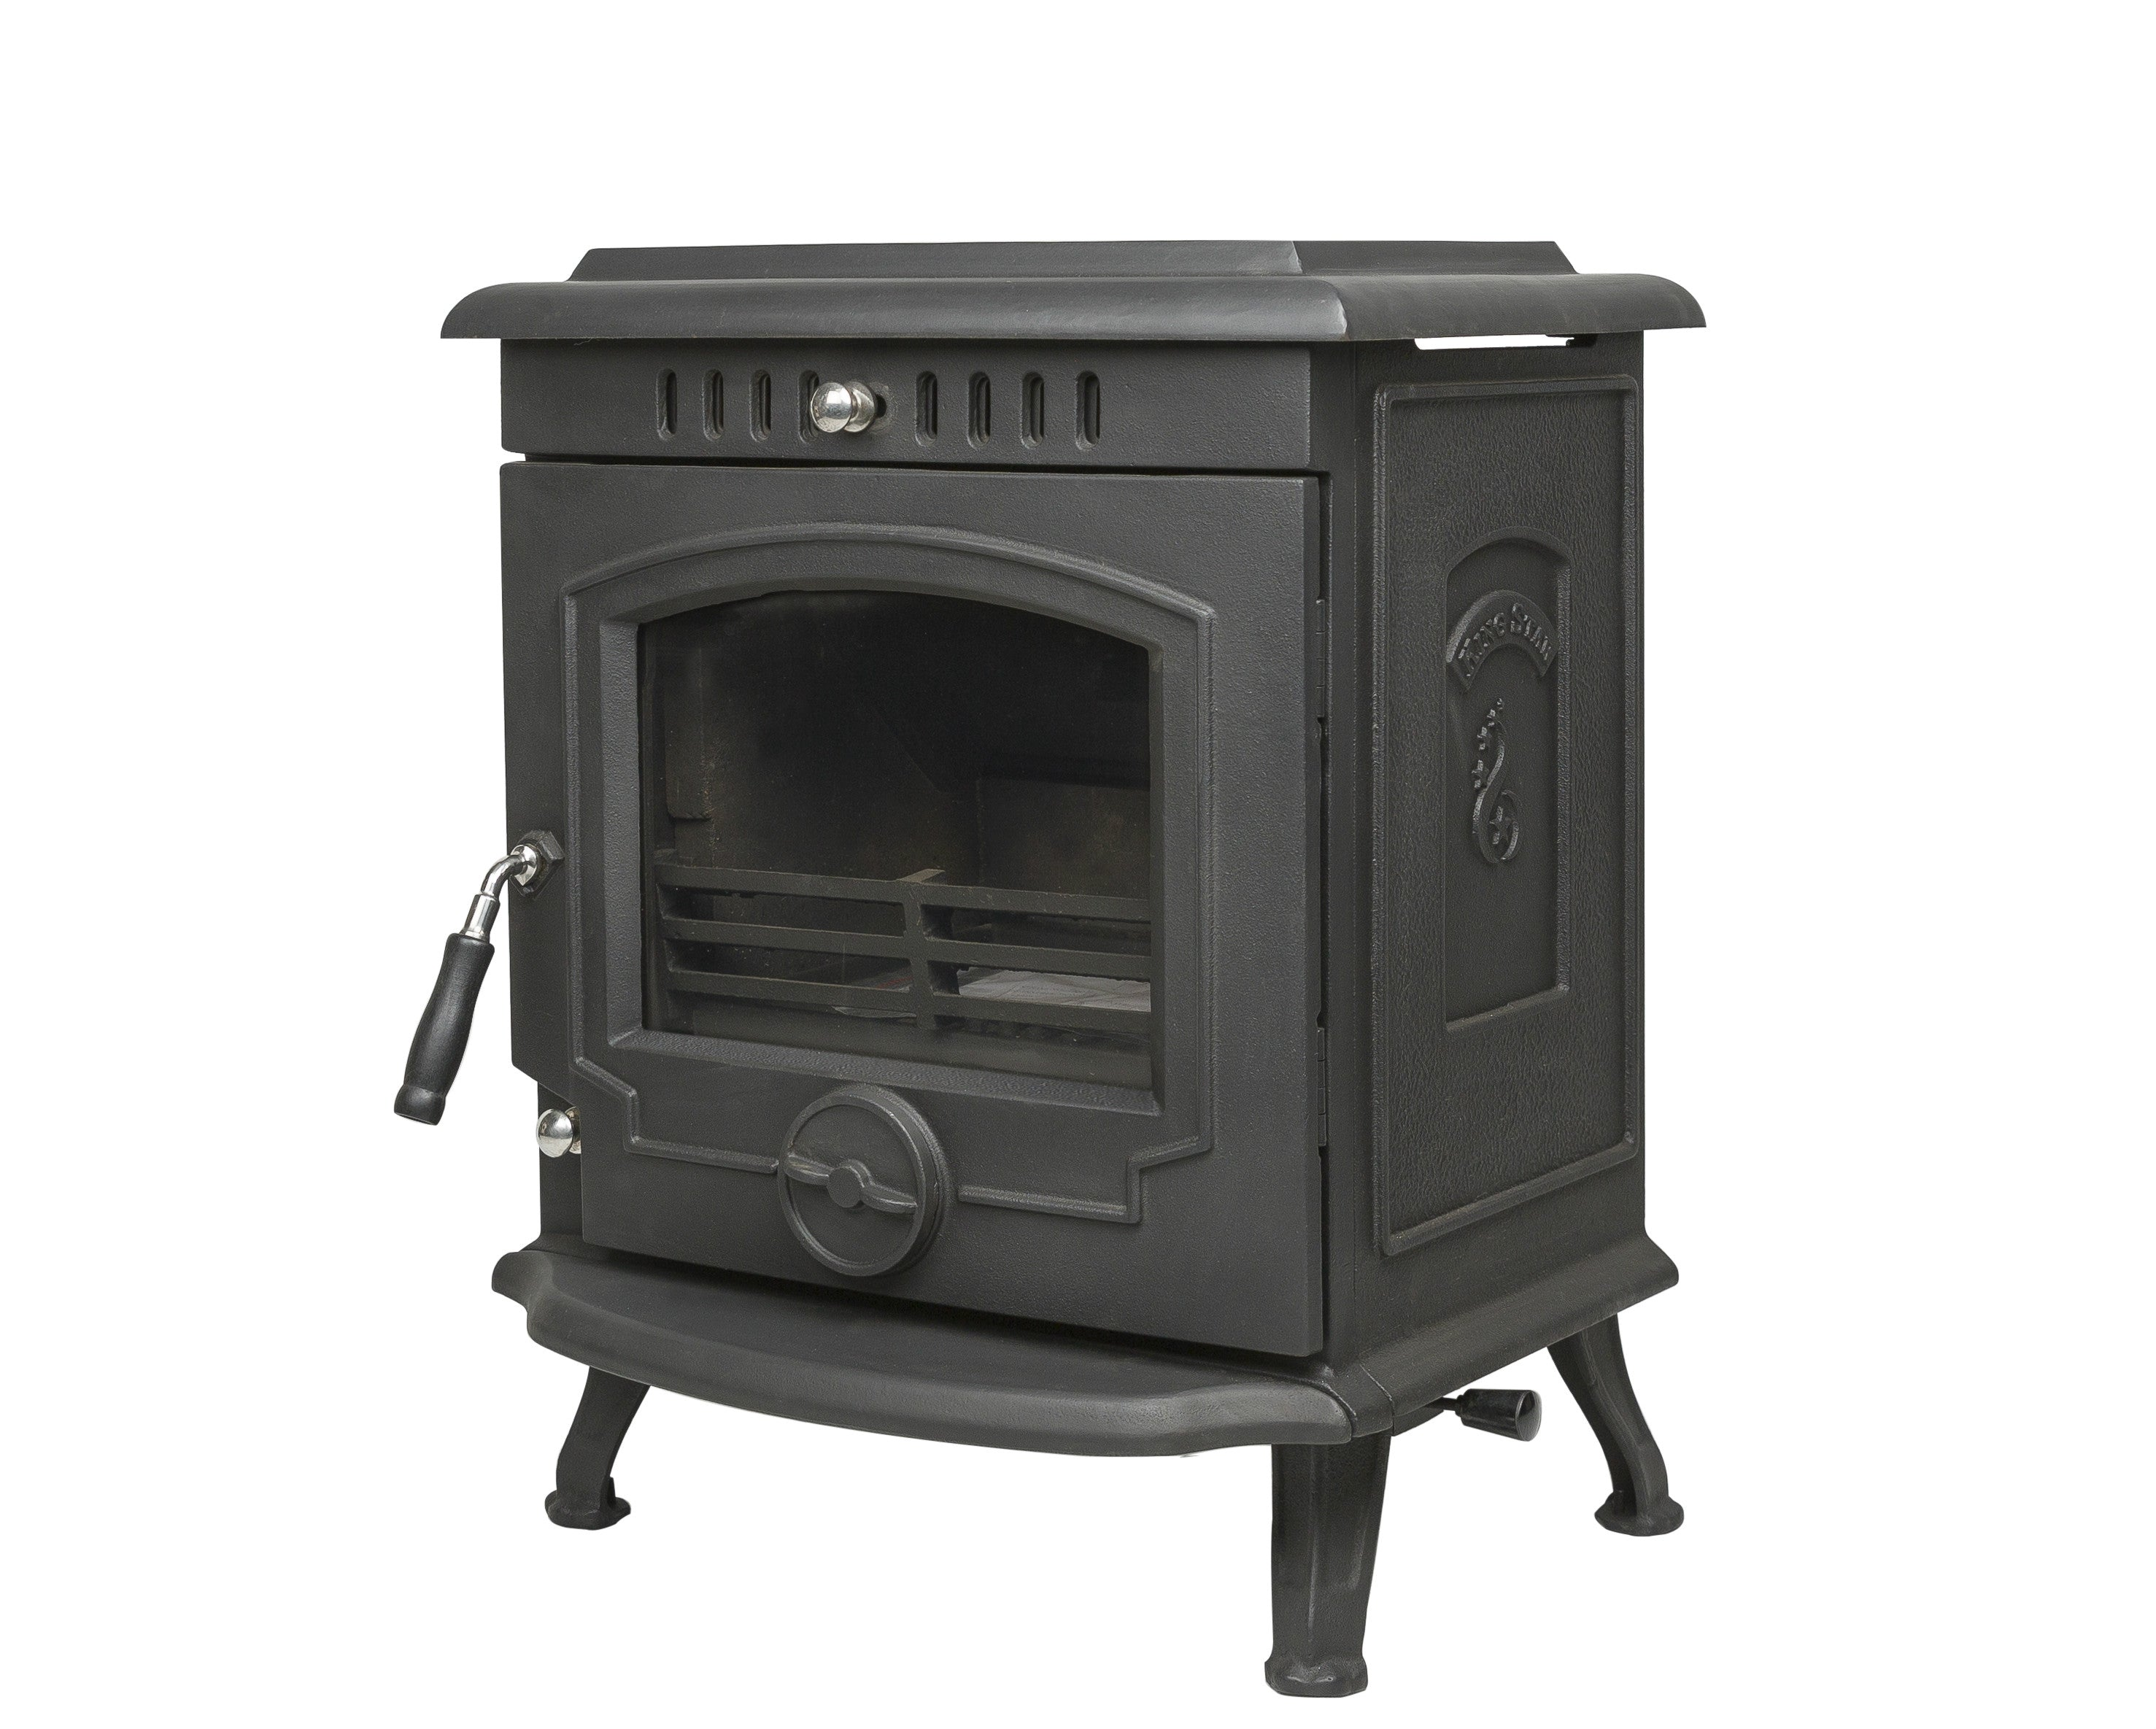 A side image of The Fraser Free Standing Stove